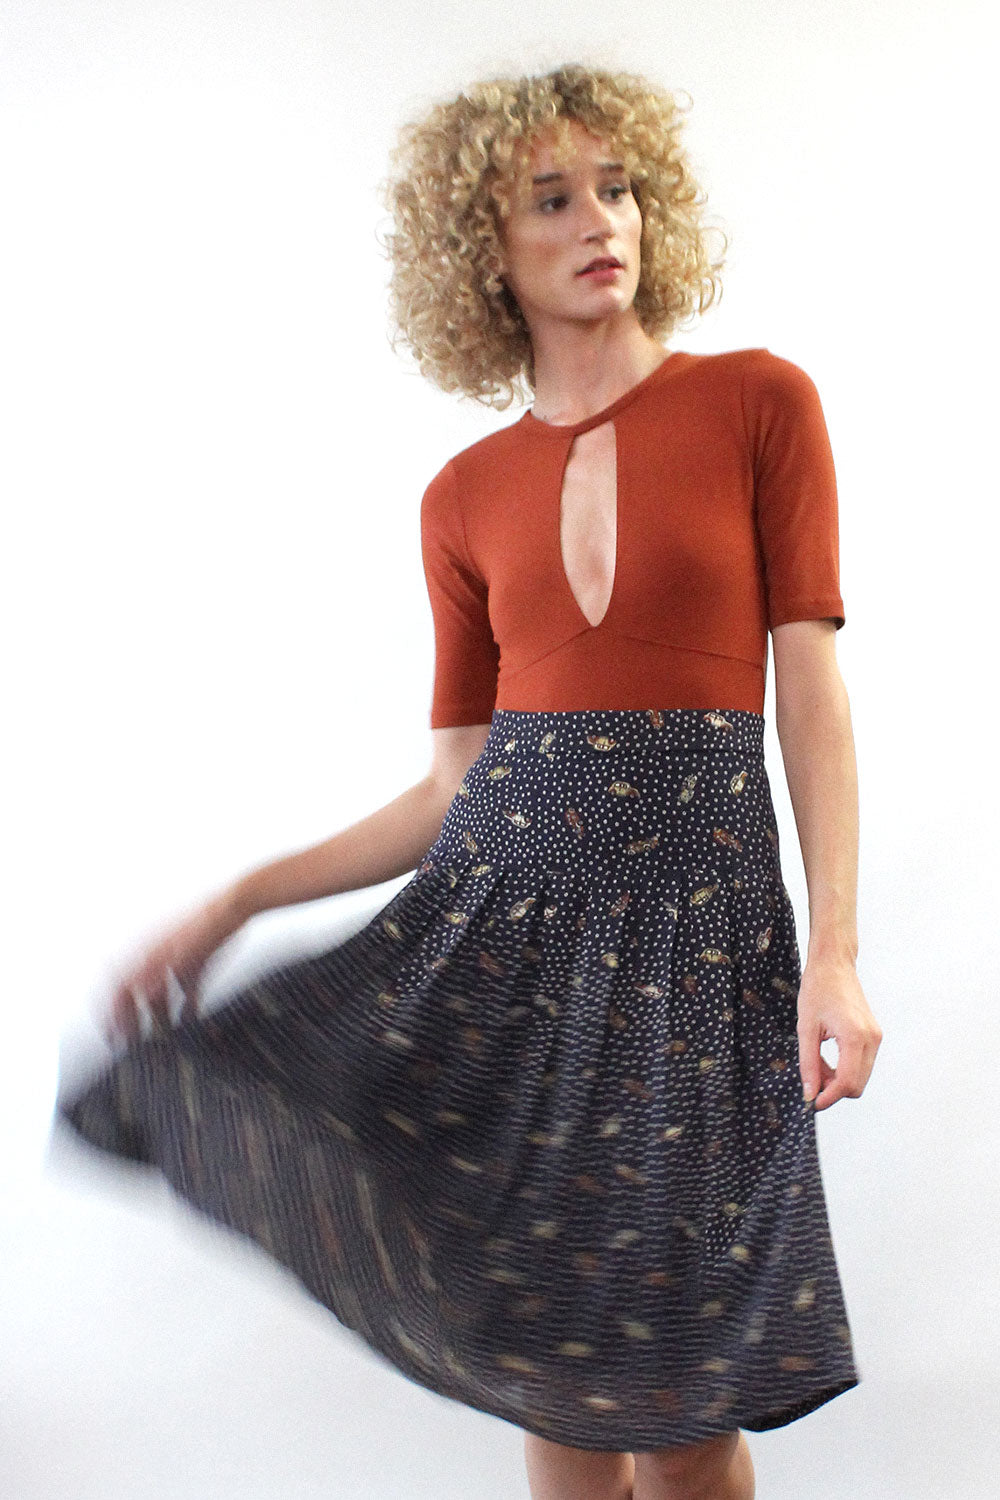 Novelty Auto Print Skirt S/M